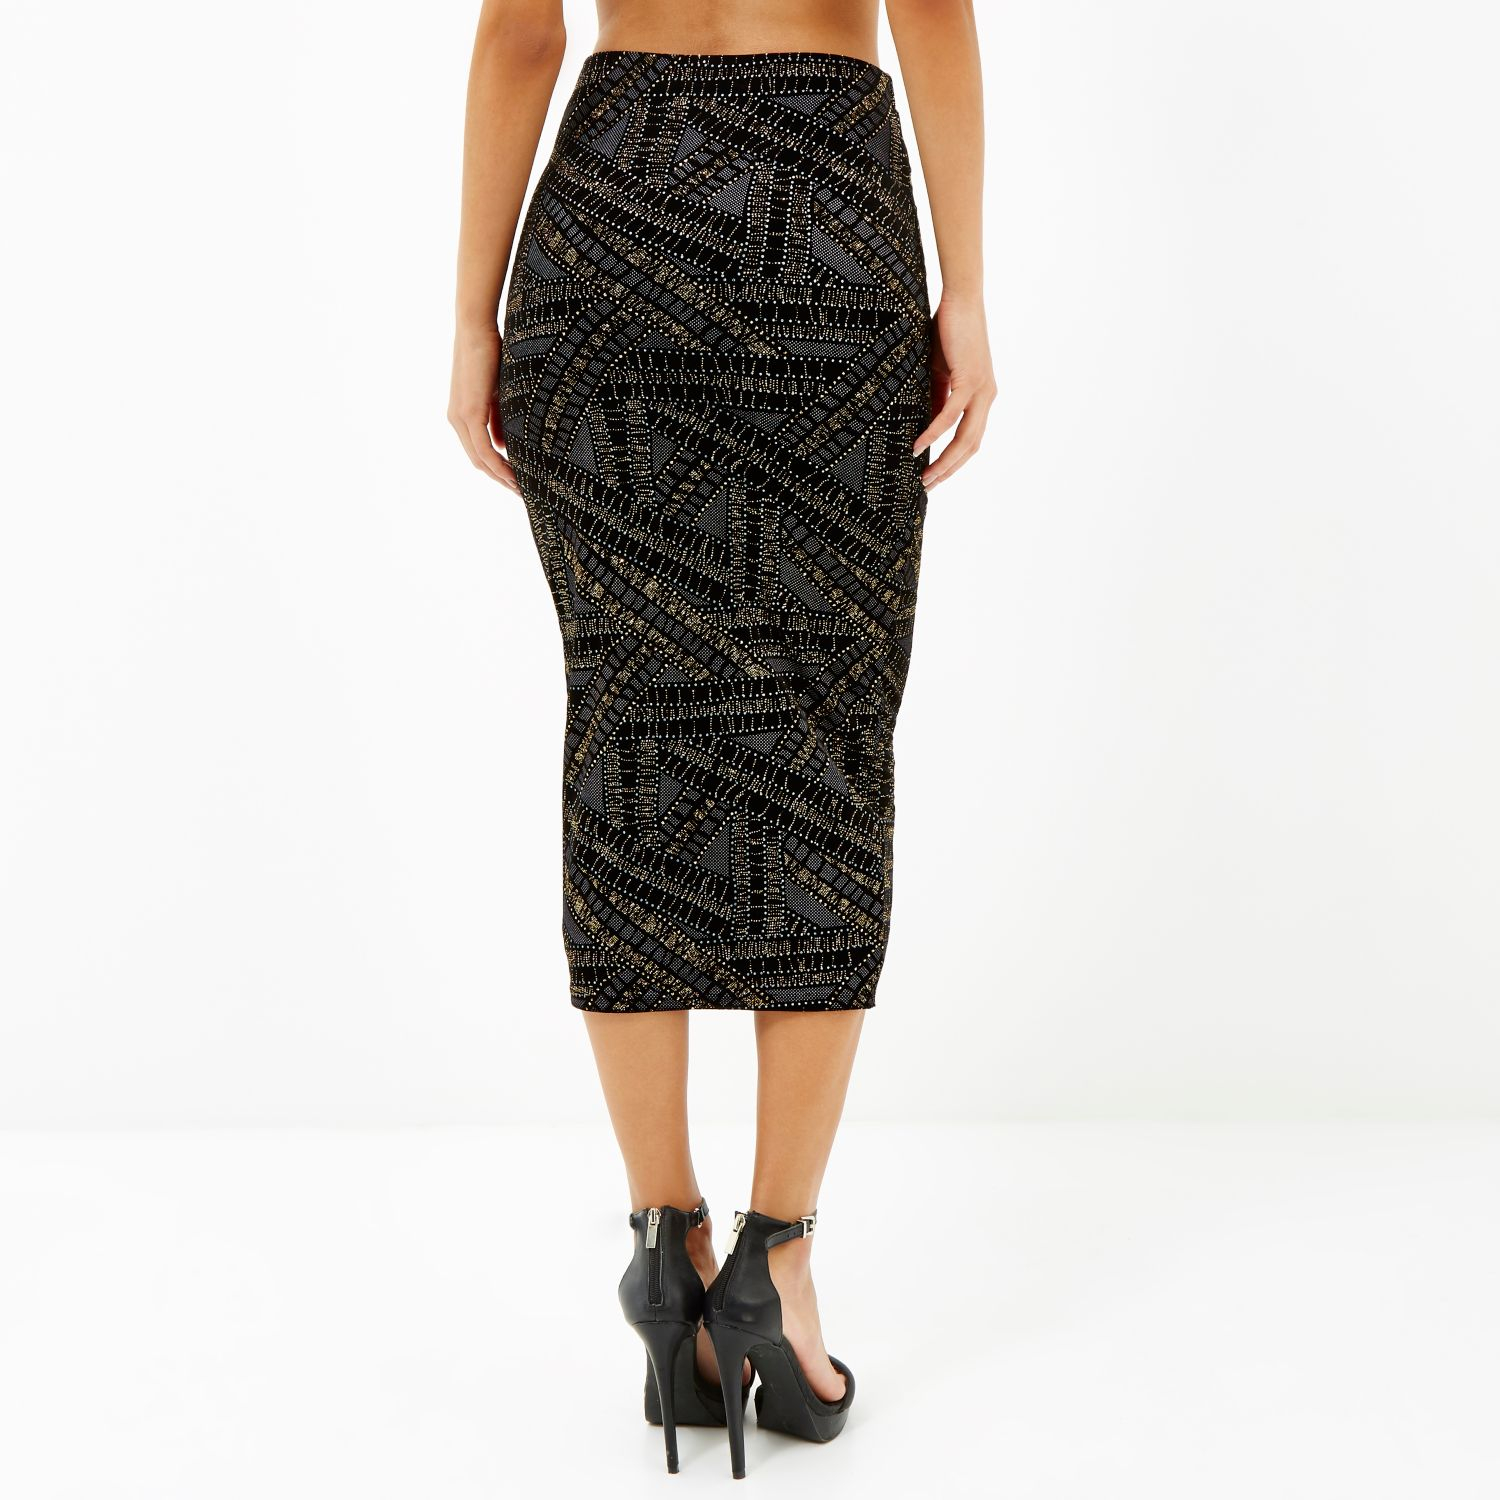 River island Black Gold Sparkle Pull On Pencil Skirt in Black | Lyst